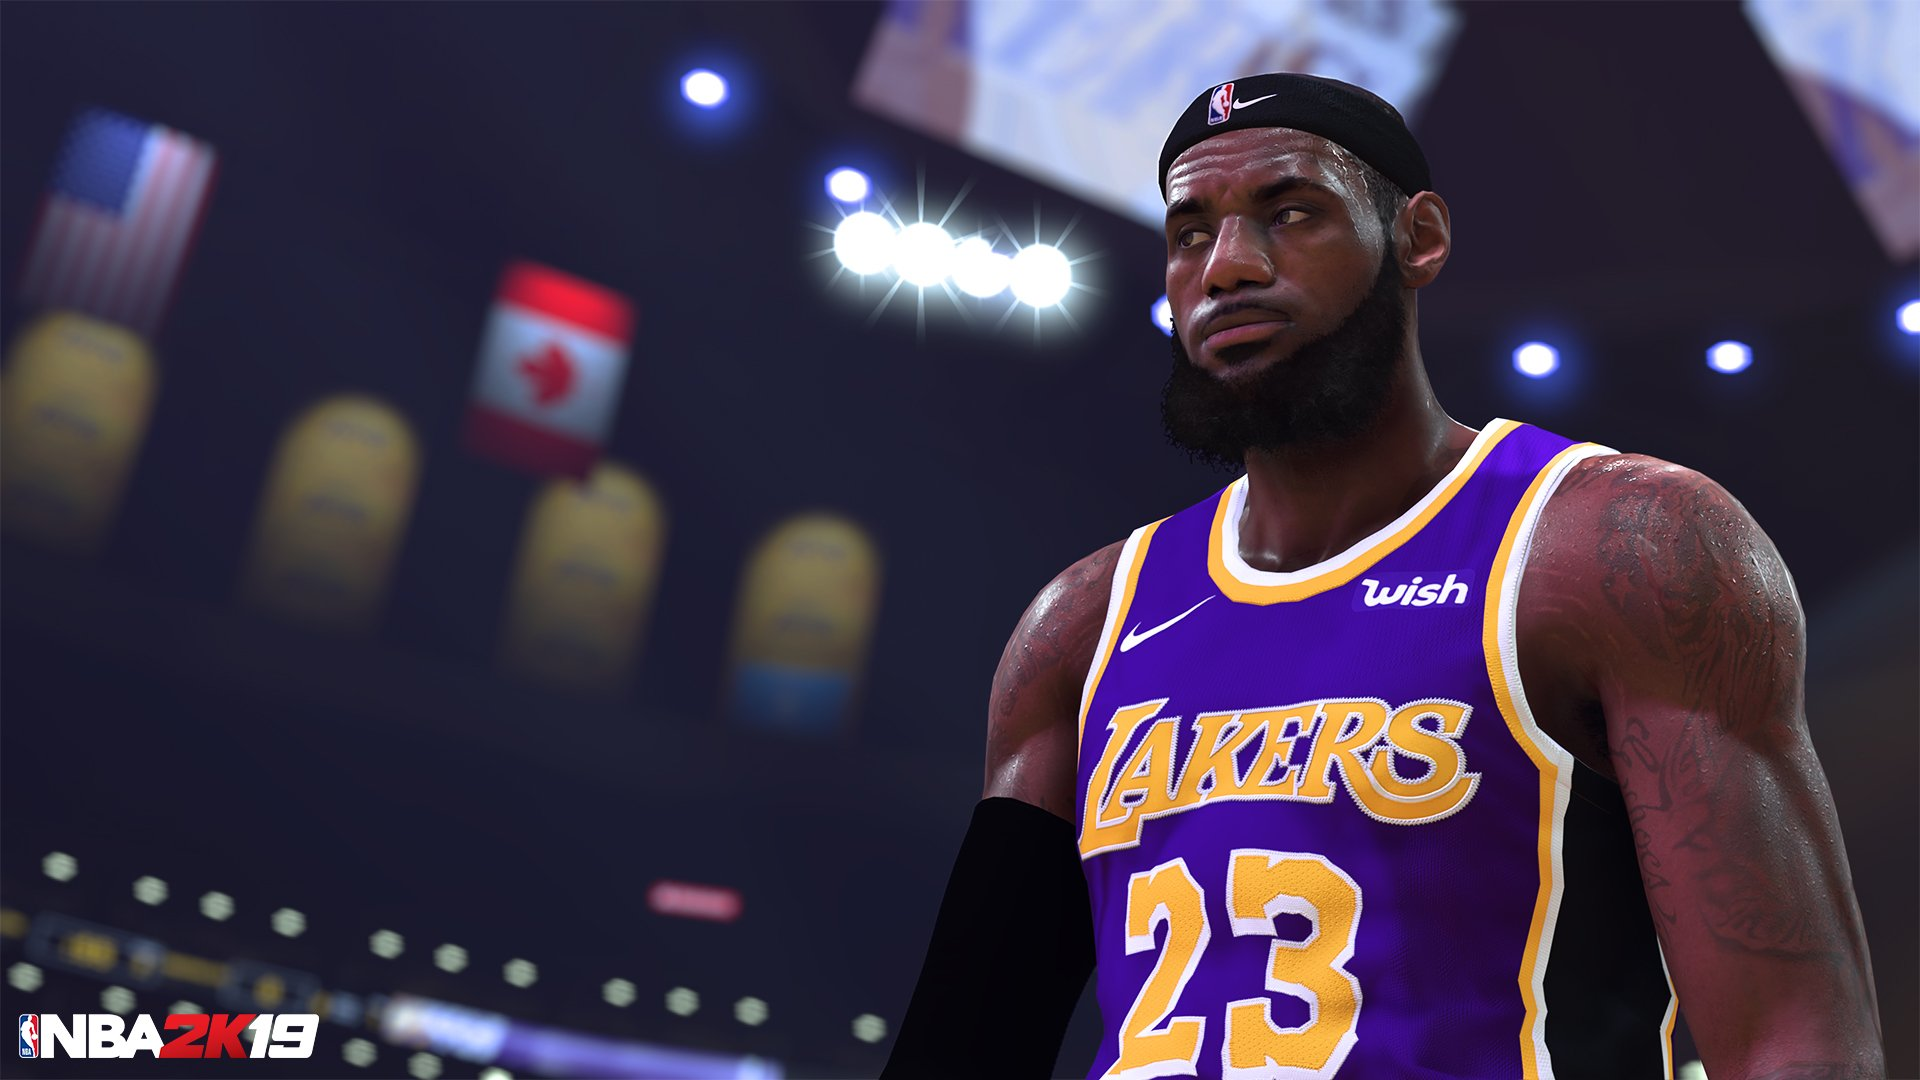 You can now play as Headband LeBron in #NBA2K19 �� Should Headband @KingJames get a 99 rating �� https://t.co/XDaboniQI1